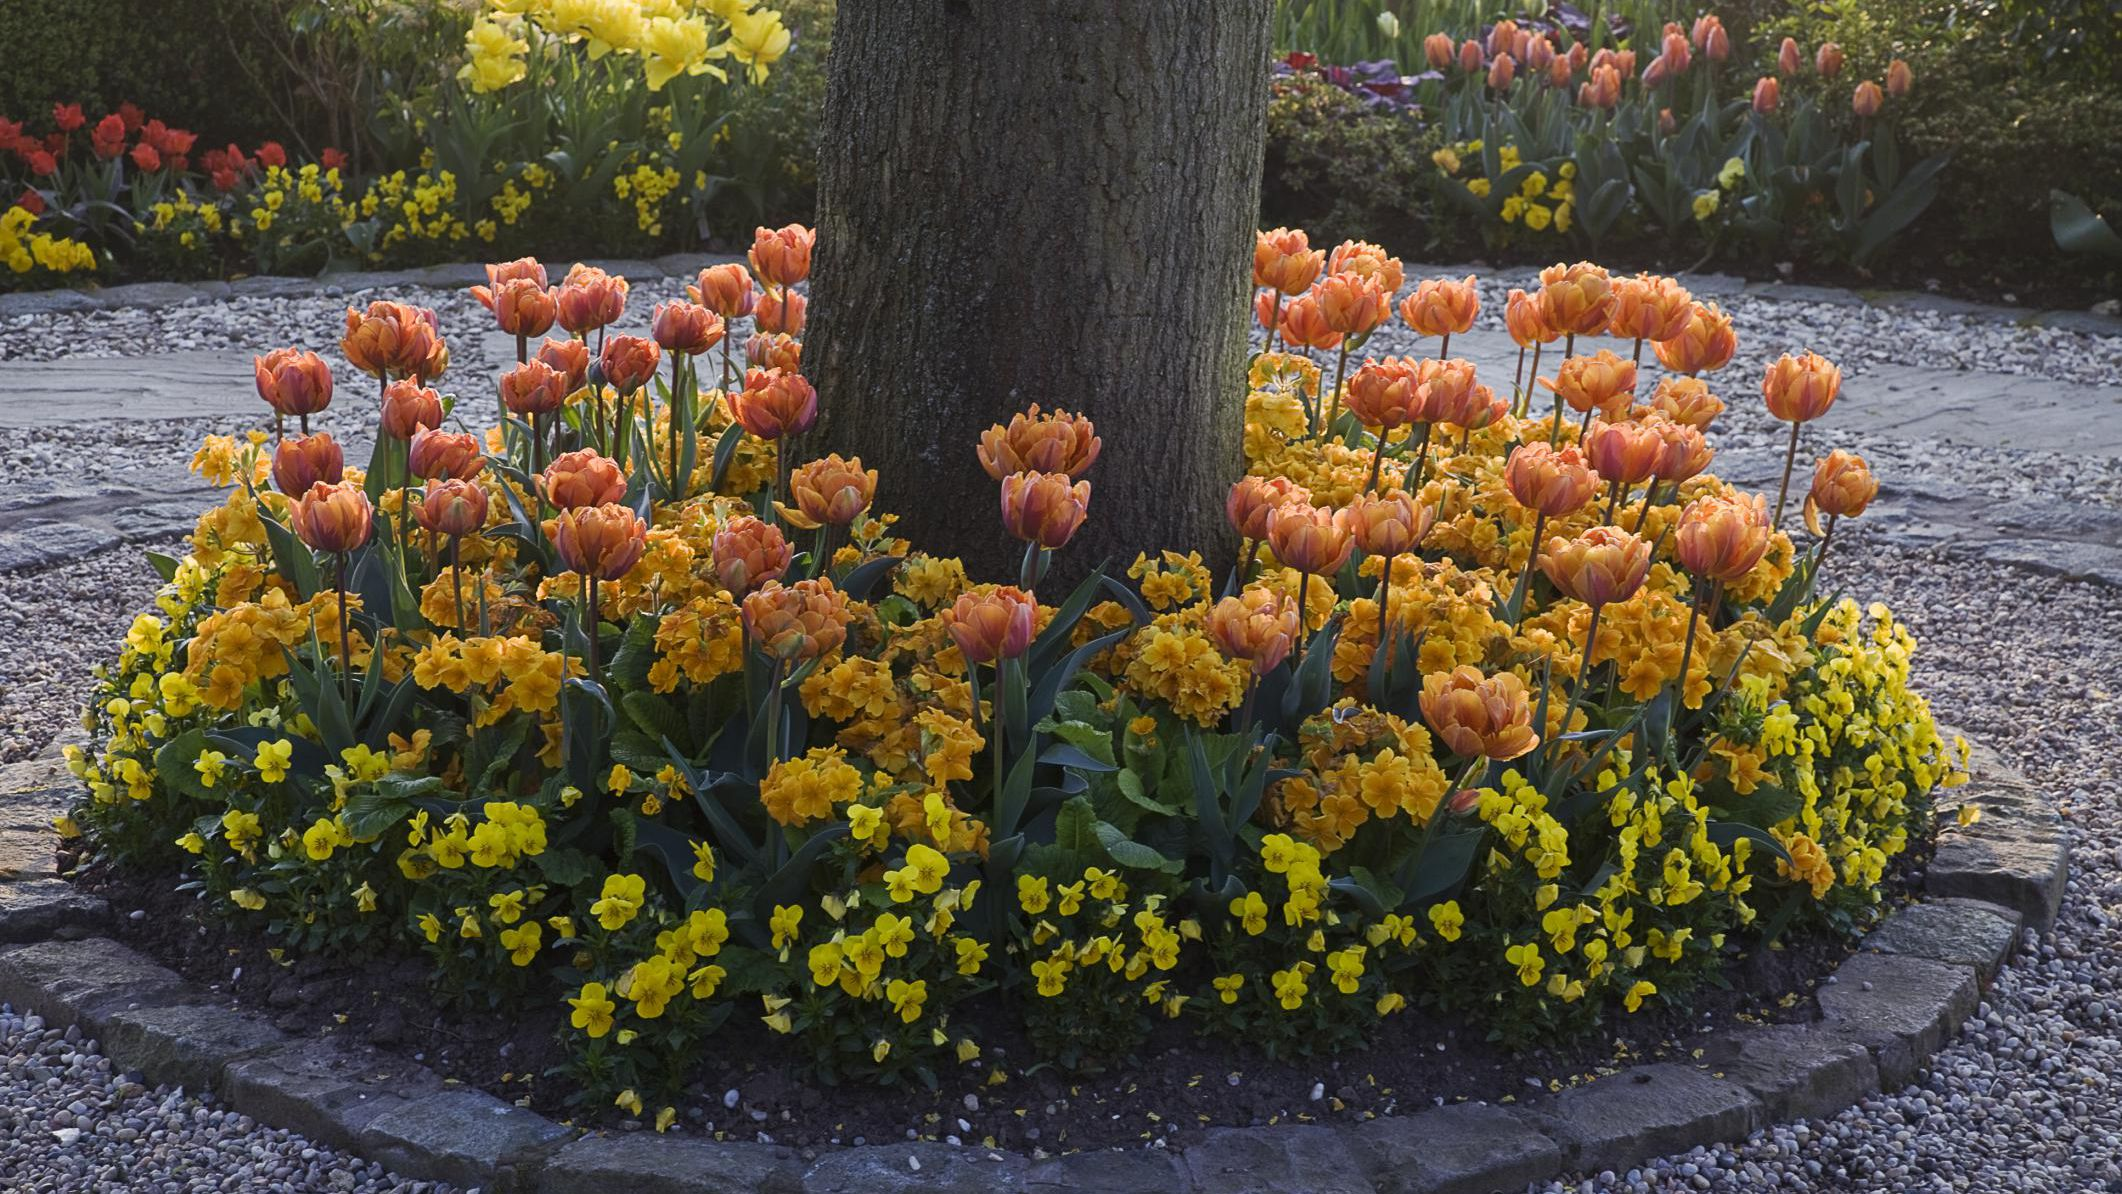 How Do You Plant Ground Cover Or Flowers Under Trees